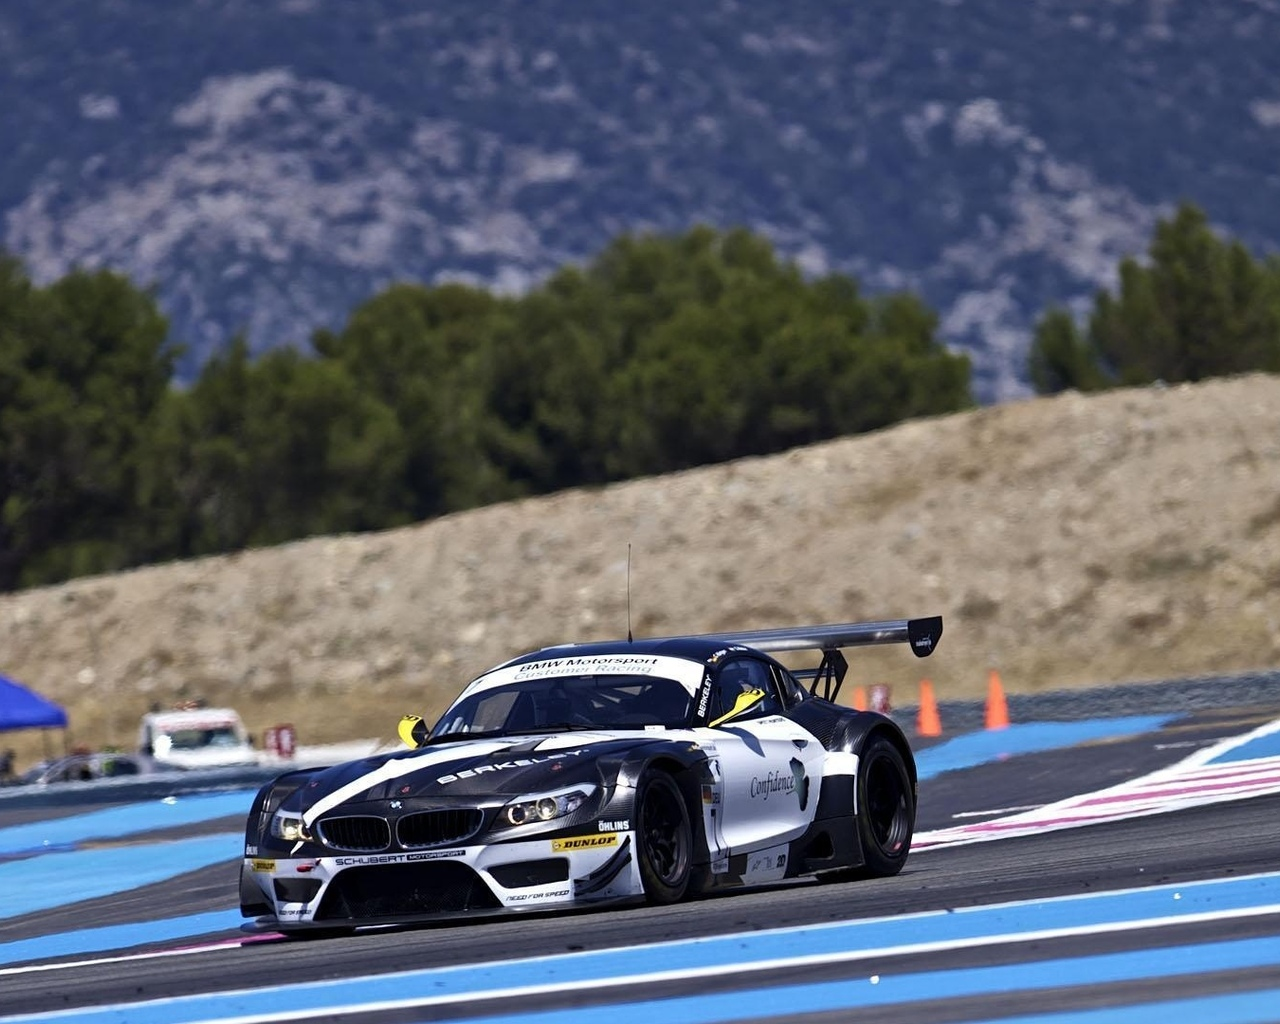 paul ricard, team need for speed, bmw, z4, fia gt3 2011